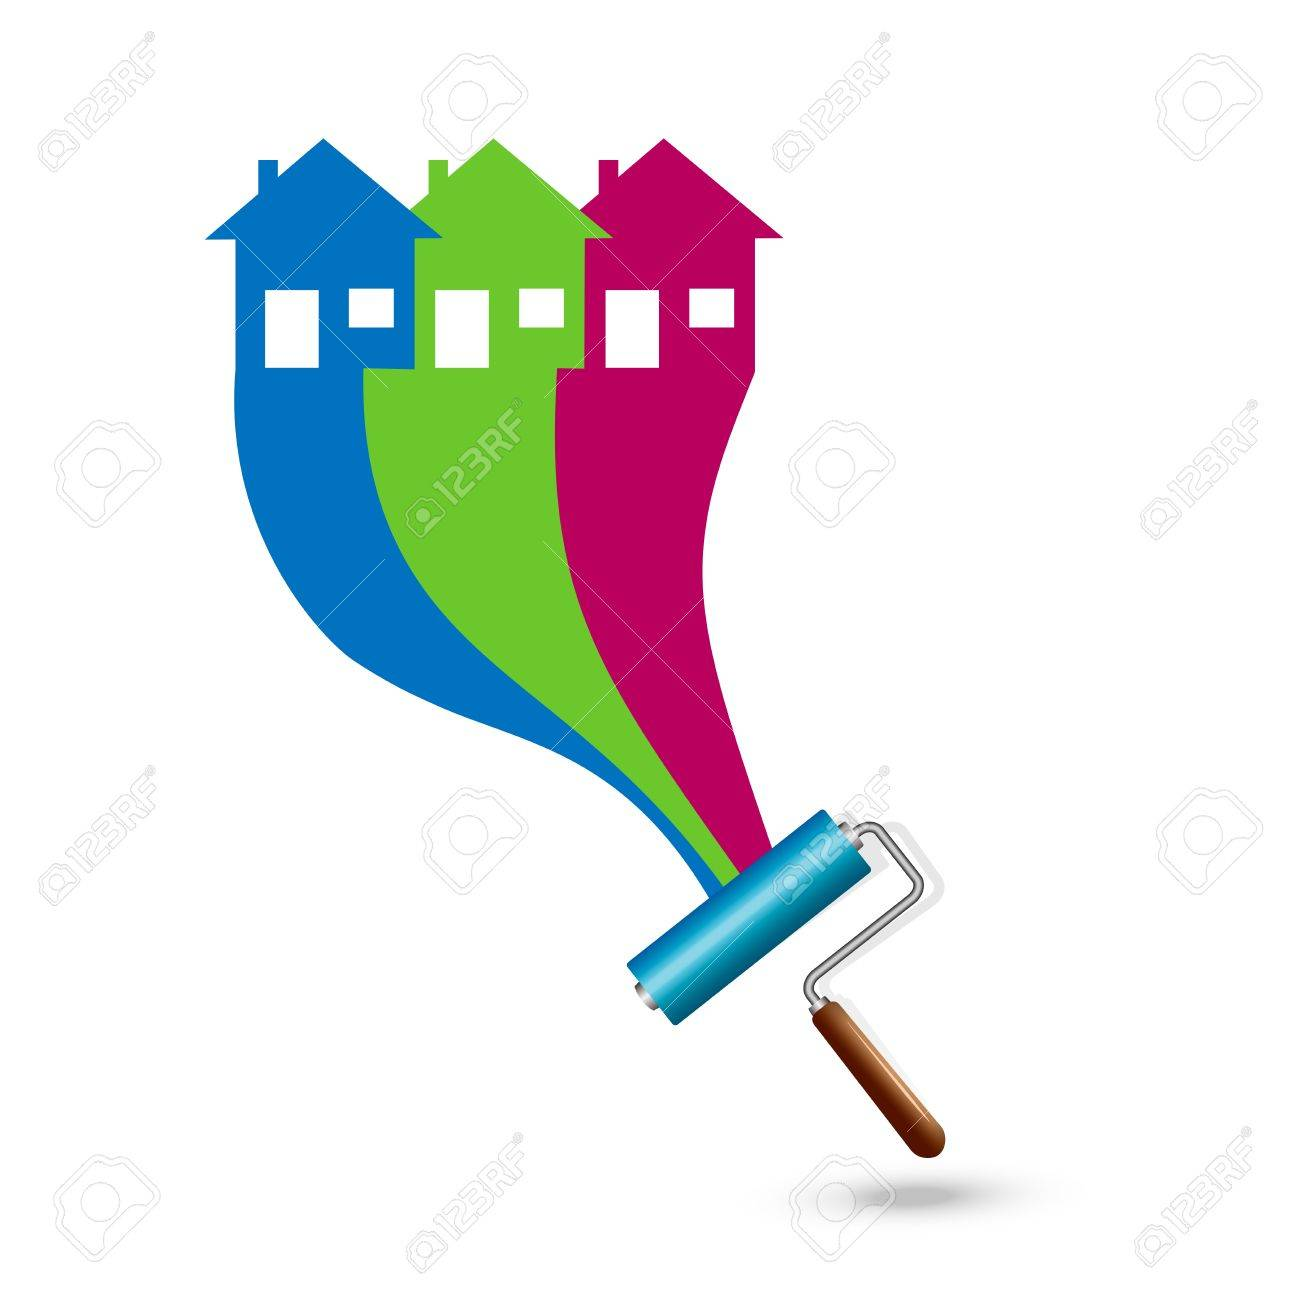 house painting stock photos & pictures. royalty free house